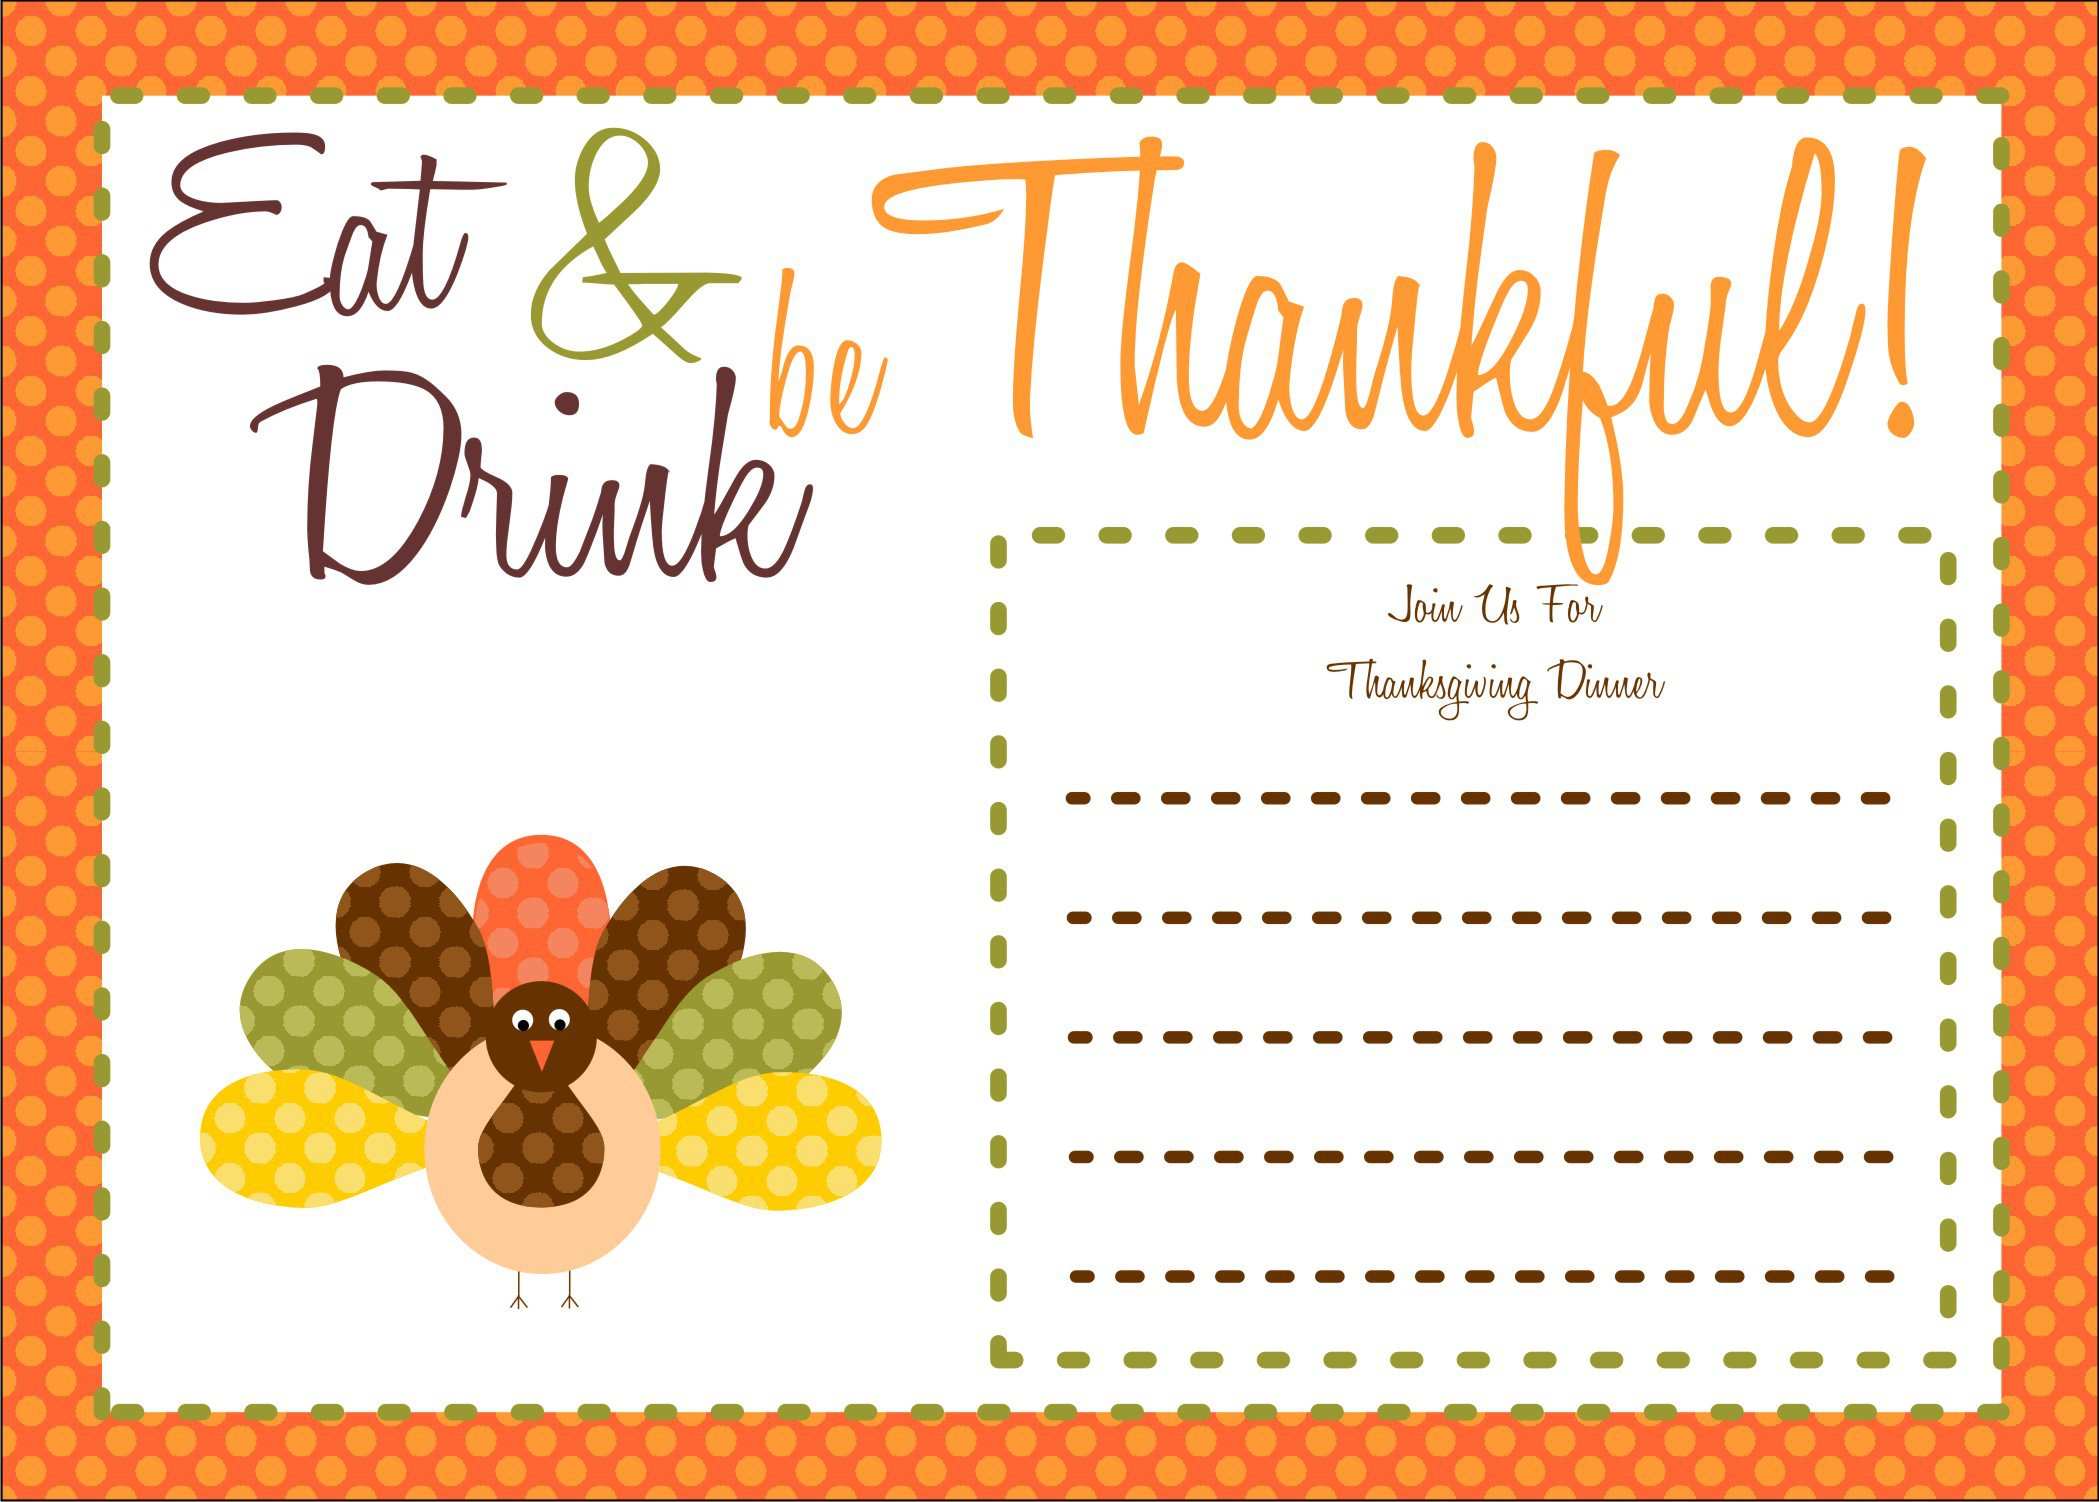 thanksgiving dinner invitation templates com thanksgiving day invitation templates